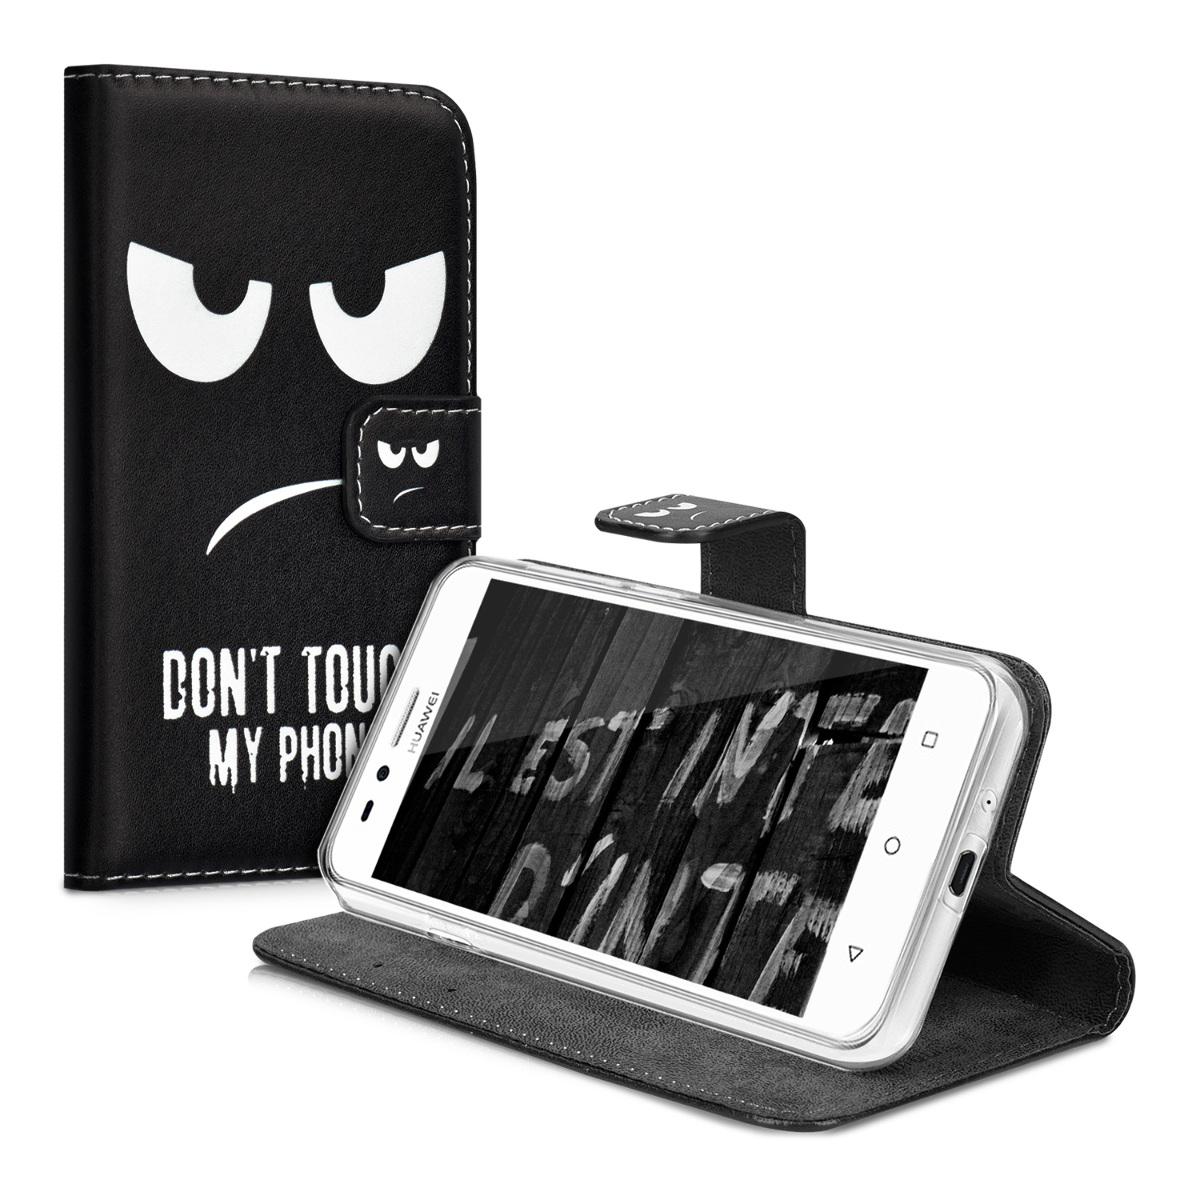 kwmobile-ETUI-EN-CUIR-SYNTHETIQUE-CHIC-POUR-HUAWEI-Y3-II-2016-SUPPORT-HOUSSE